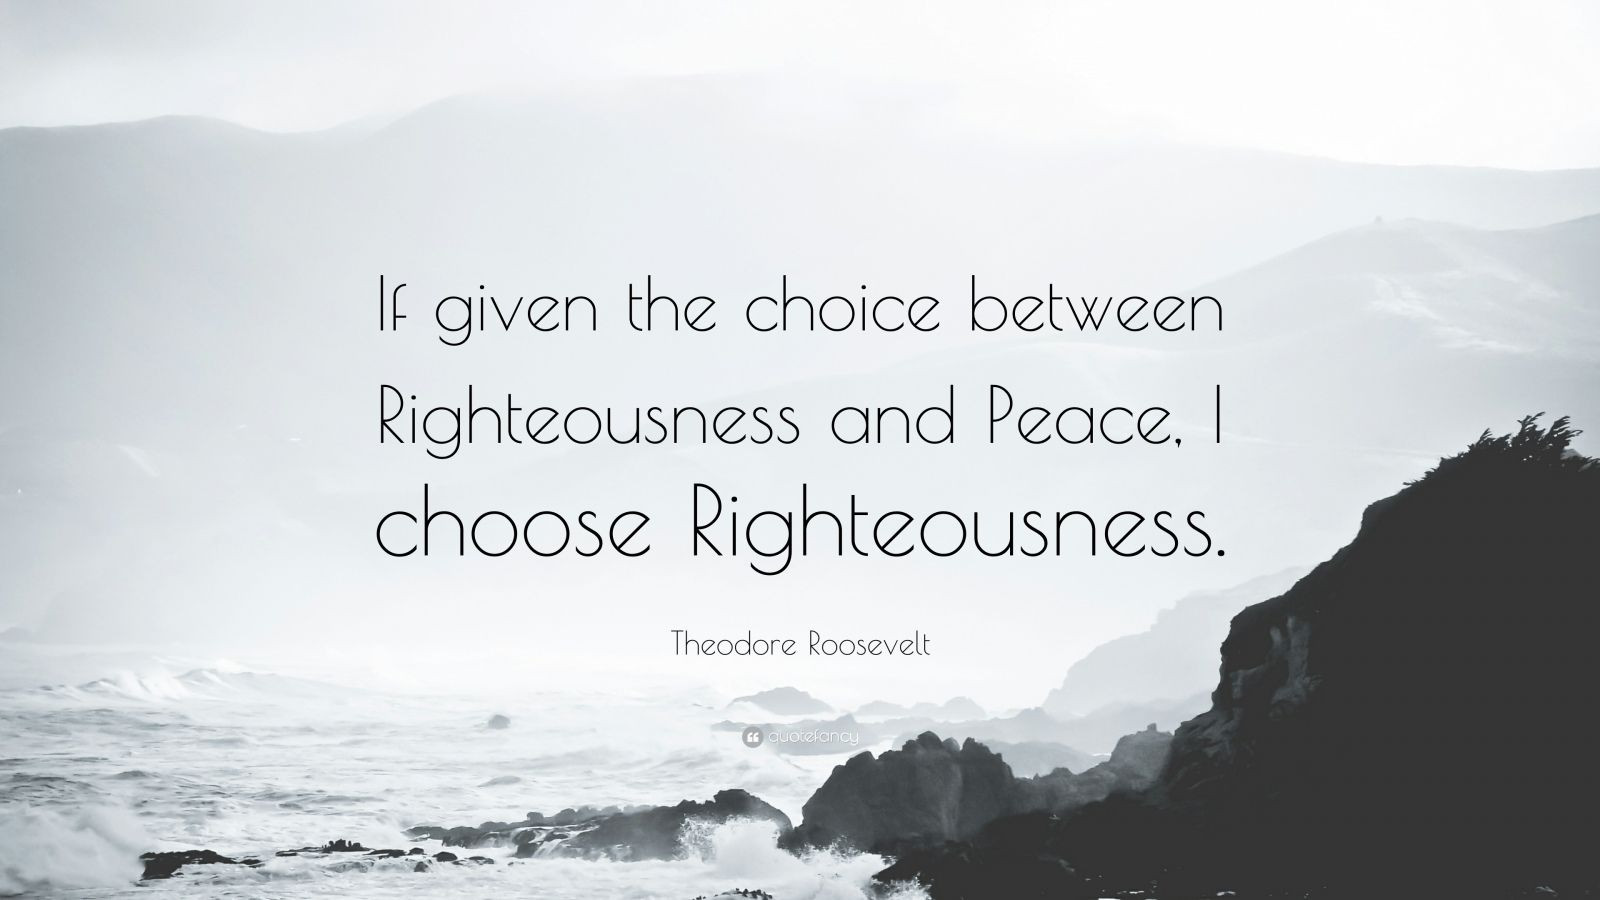 """Theodore Roosevelt Quote: """"If given the choice between Righteousness and Peace, I choose Righteousness."""""""